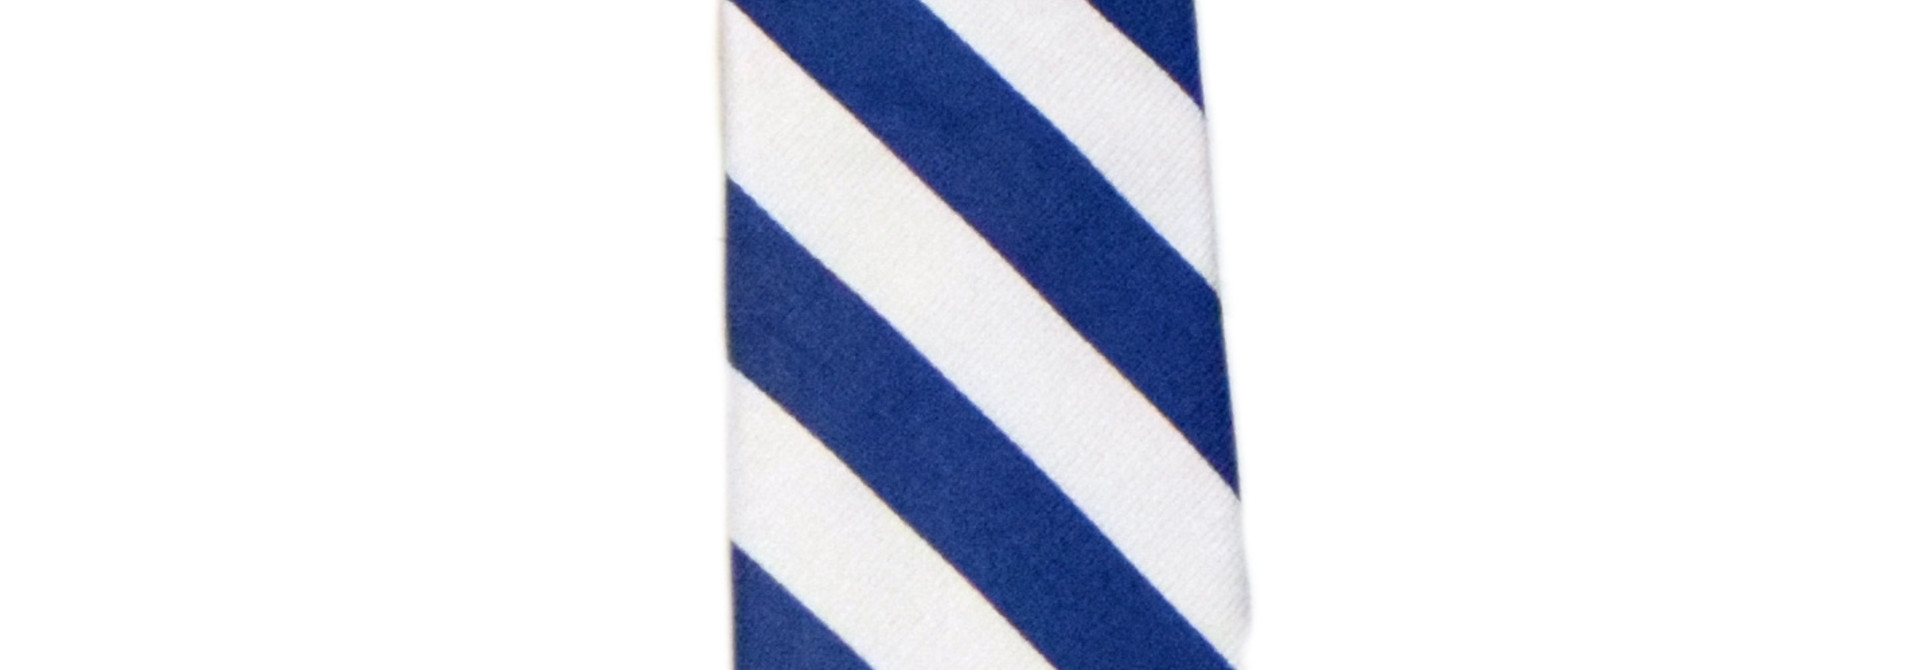 Blue and White Striped Tie